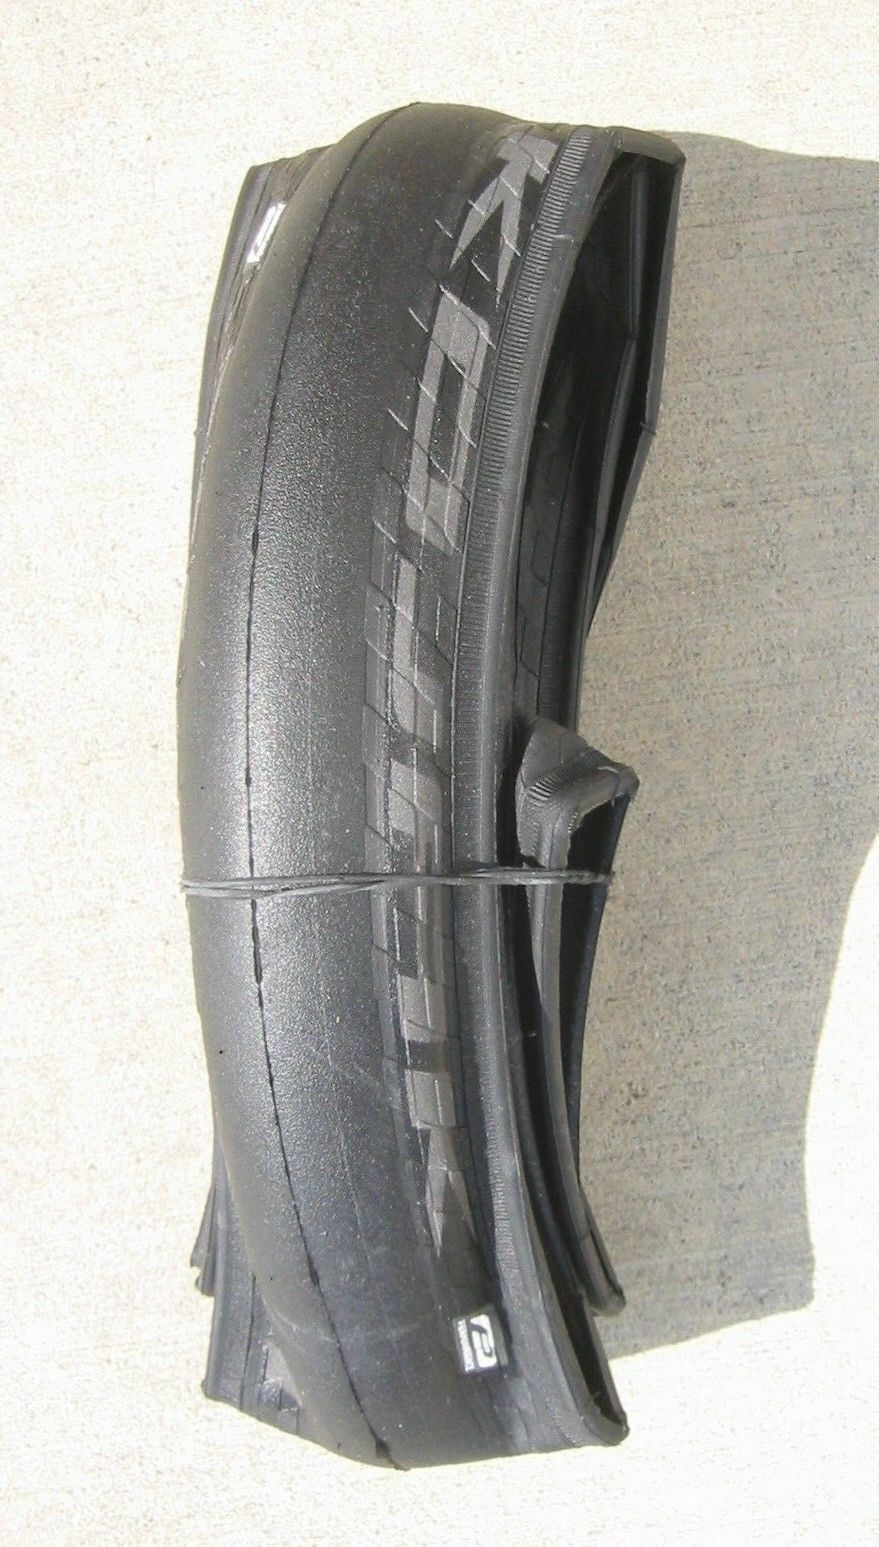 Schwalbe KOJAK 700x35c   HS385   35-622  330 grams Kevlar Folding Tire  find your favorite here